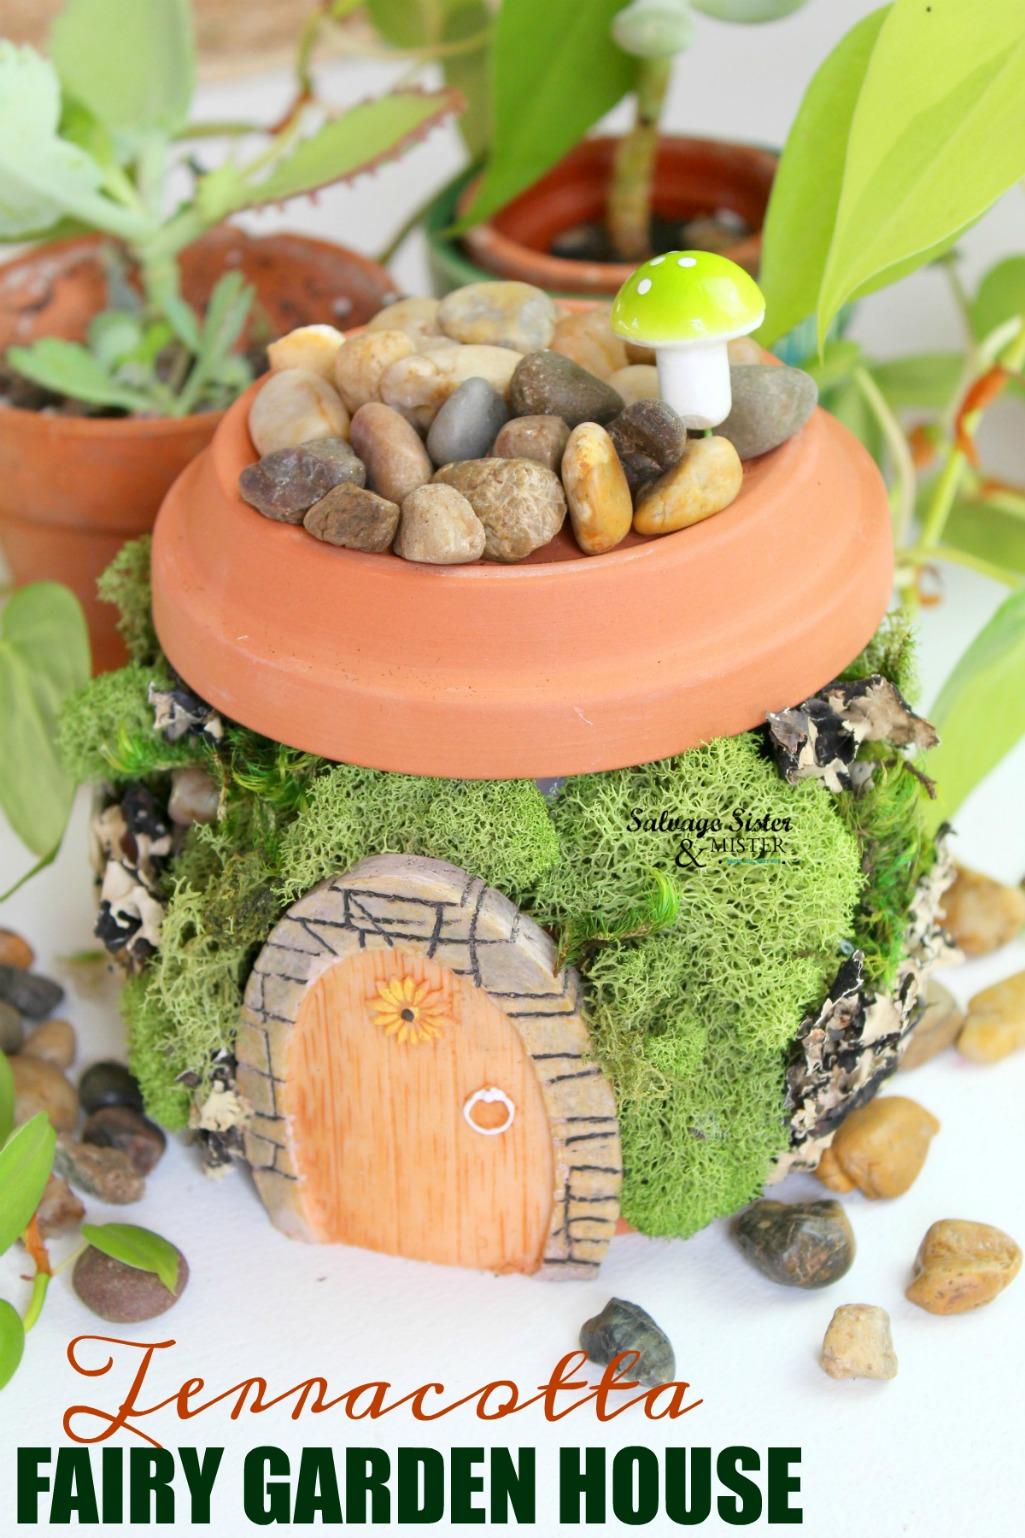 A magical little terracotta fairy garden house that is easy to make and uses very few items. A great way to repurpose old clay pots you aren't using or even make use of a broken pot. The full DIY tutorial is on salvagesisterandmister.com and is perfect for your spring garden or a fun craft projects for the kids.